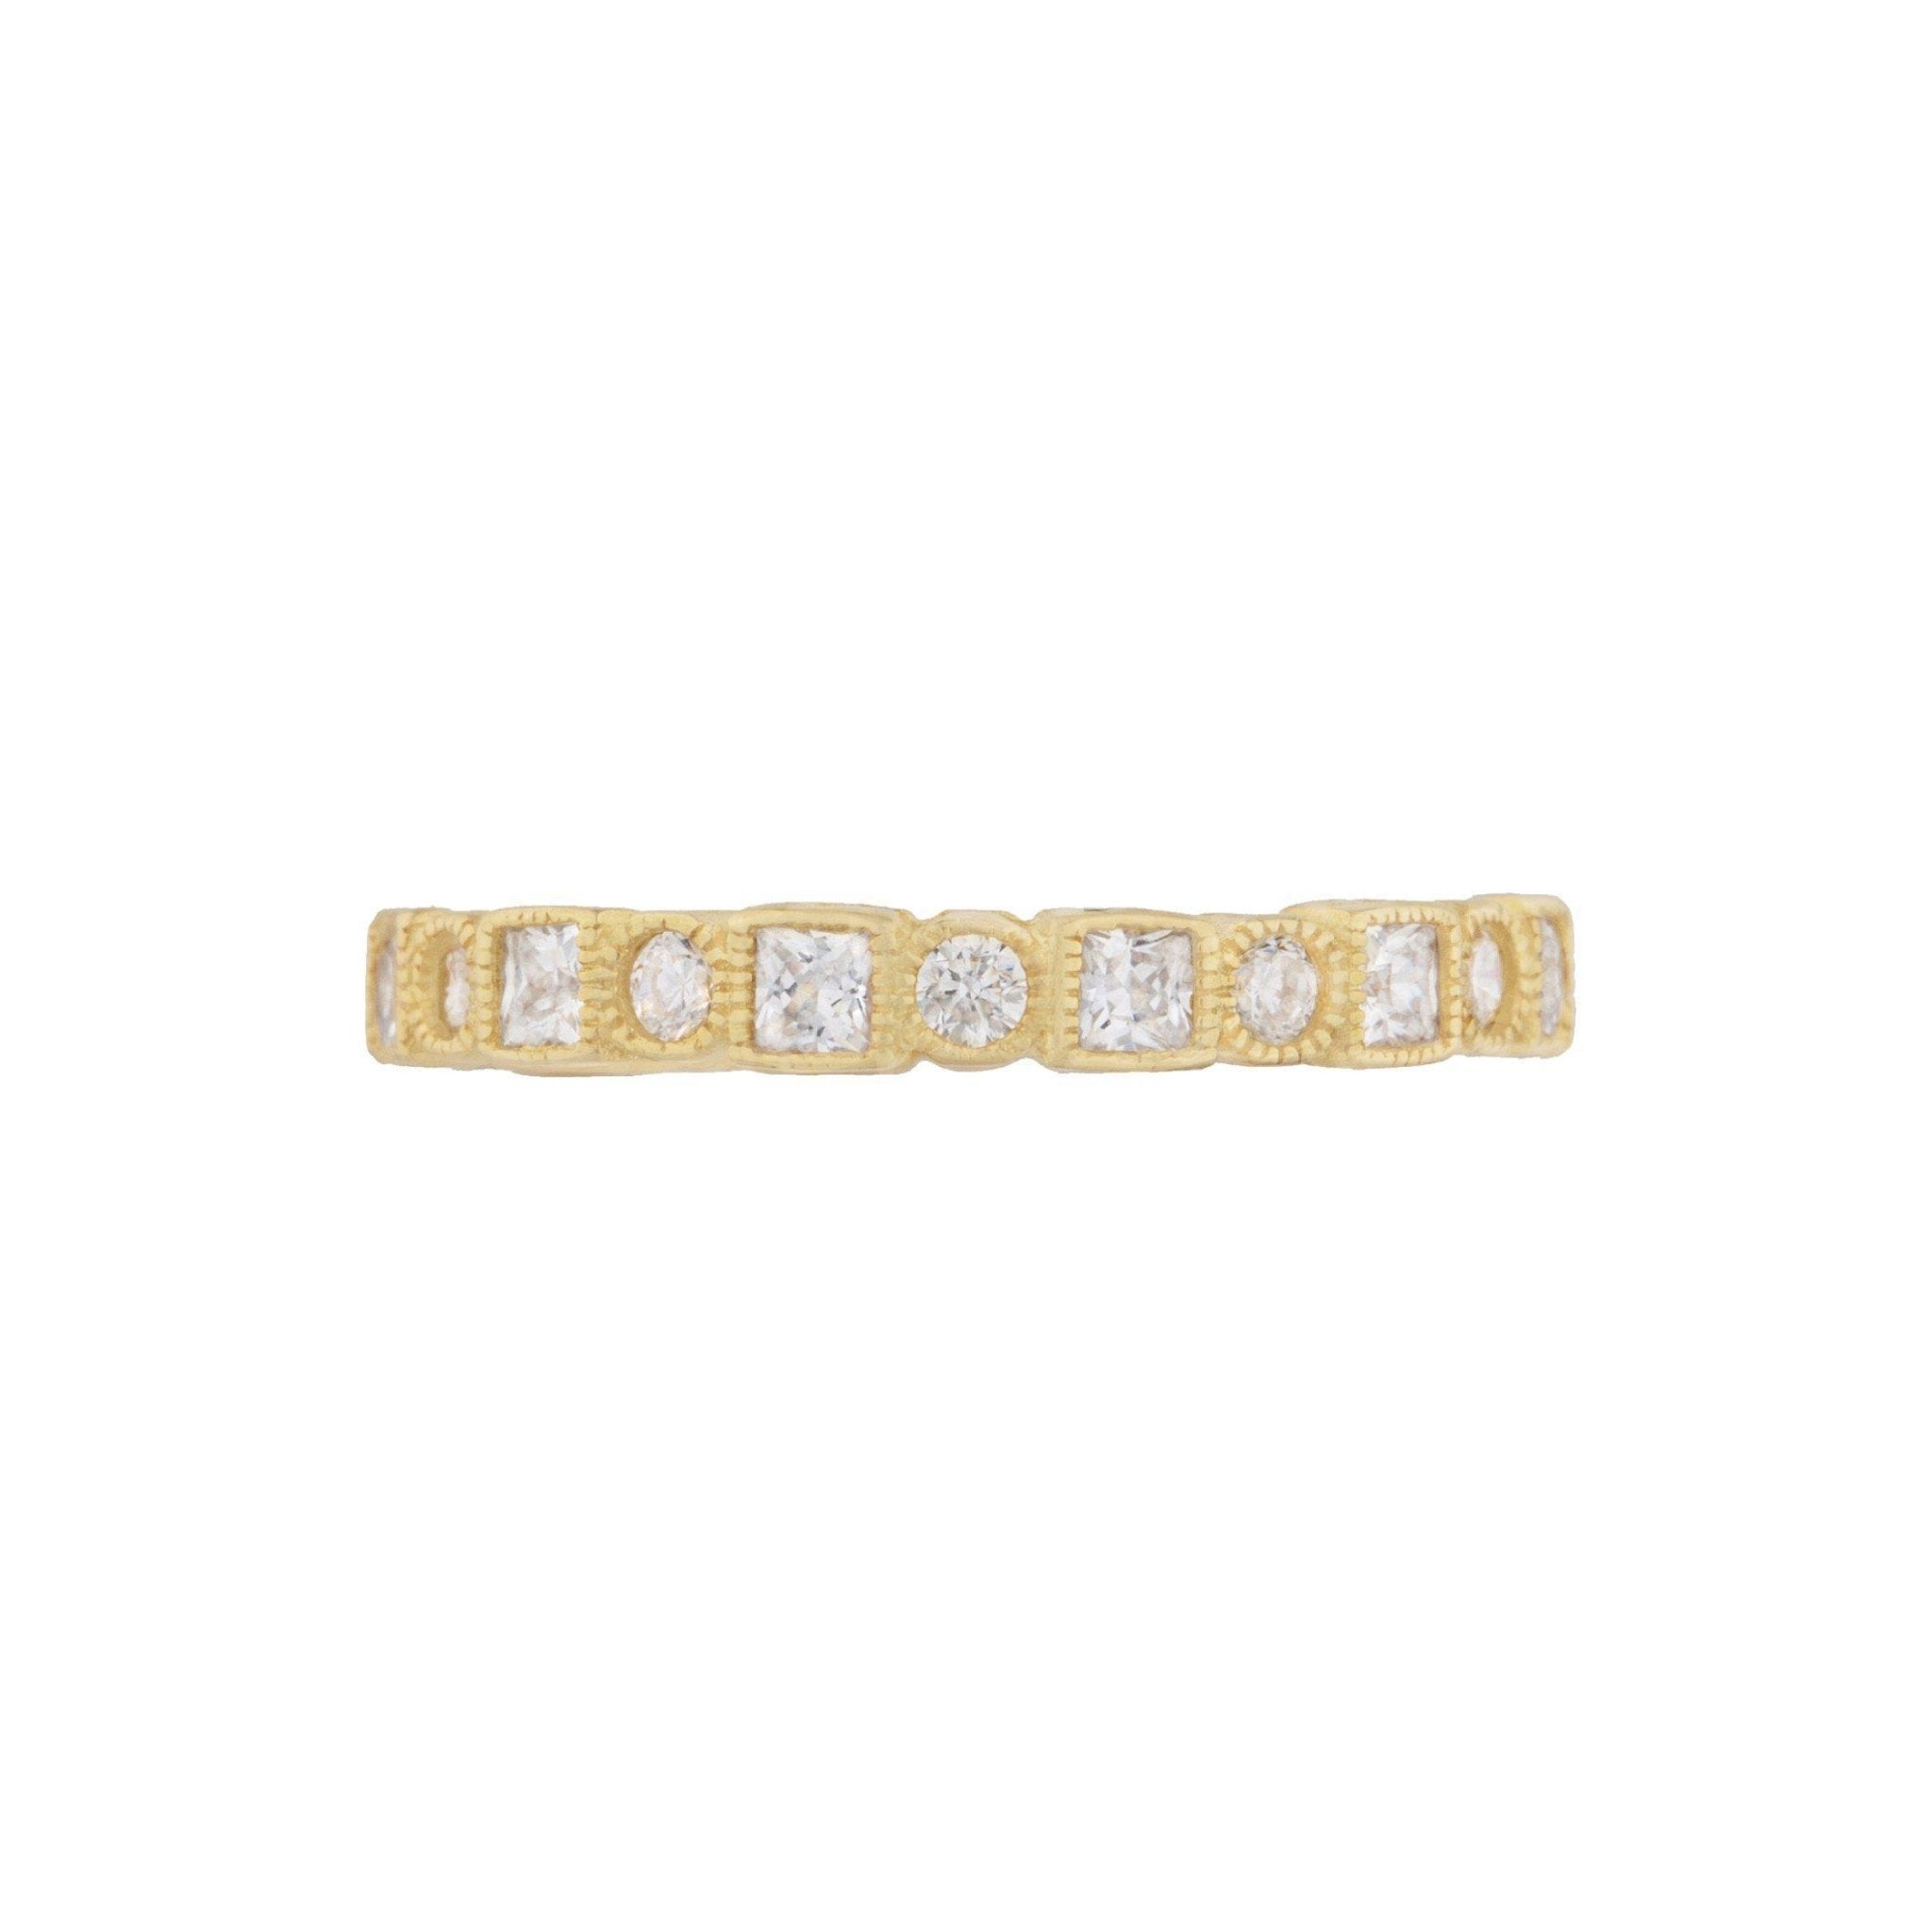 Sophia Eternity Band Ring - Taylor Adorn